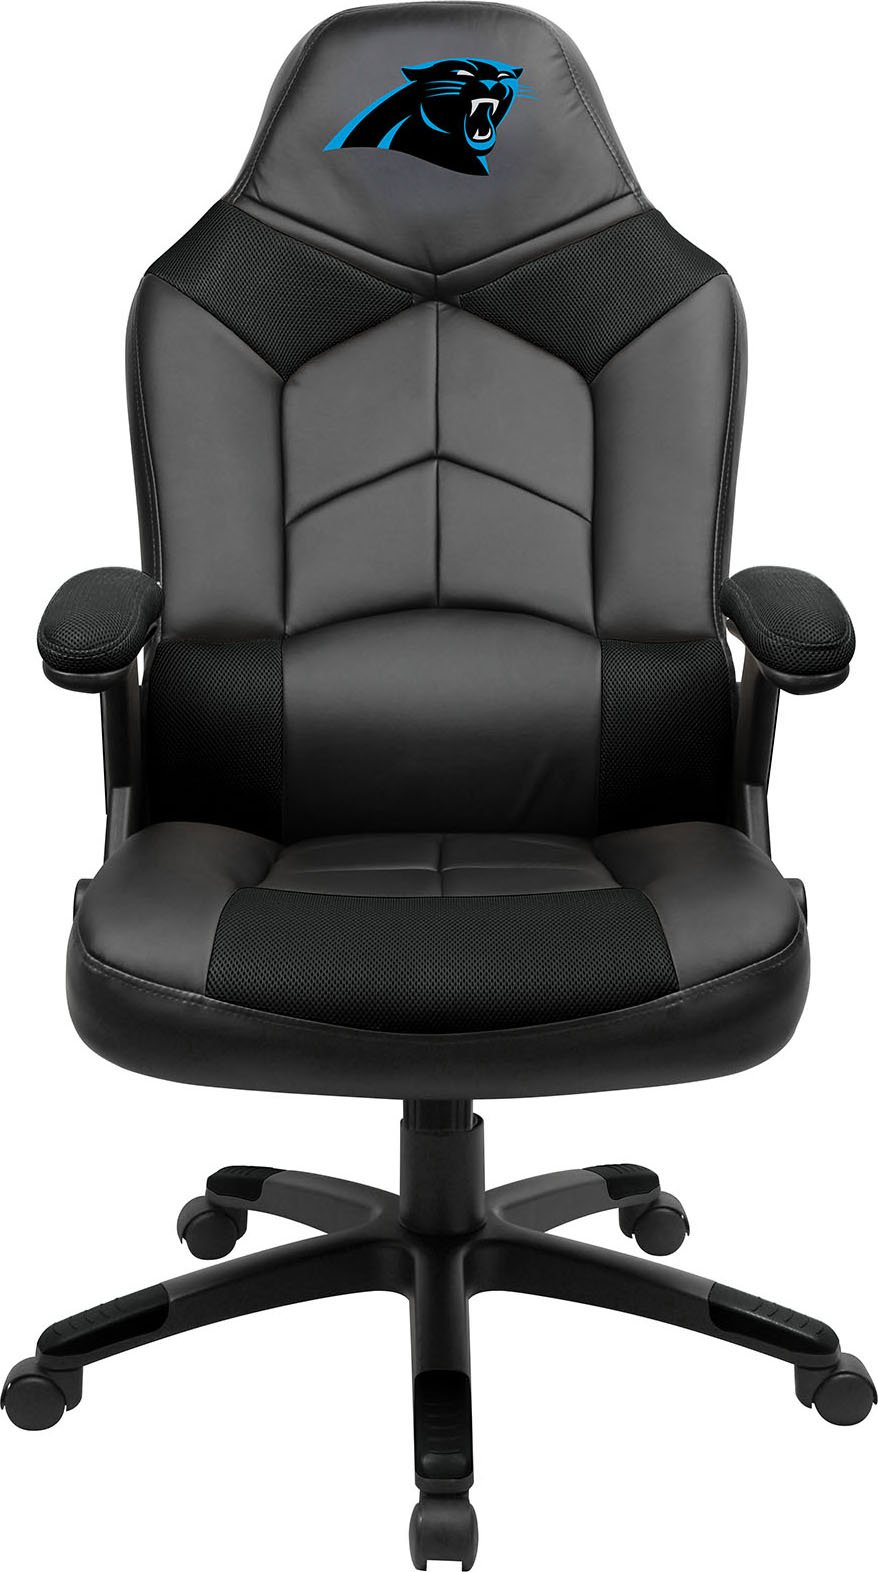 Imperial Officially Licensed NFL Furniture; Oversized Gaming Chairs, Carolina Panthers